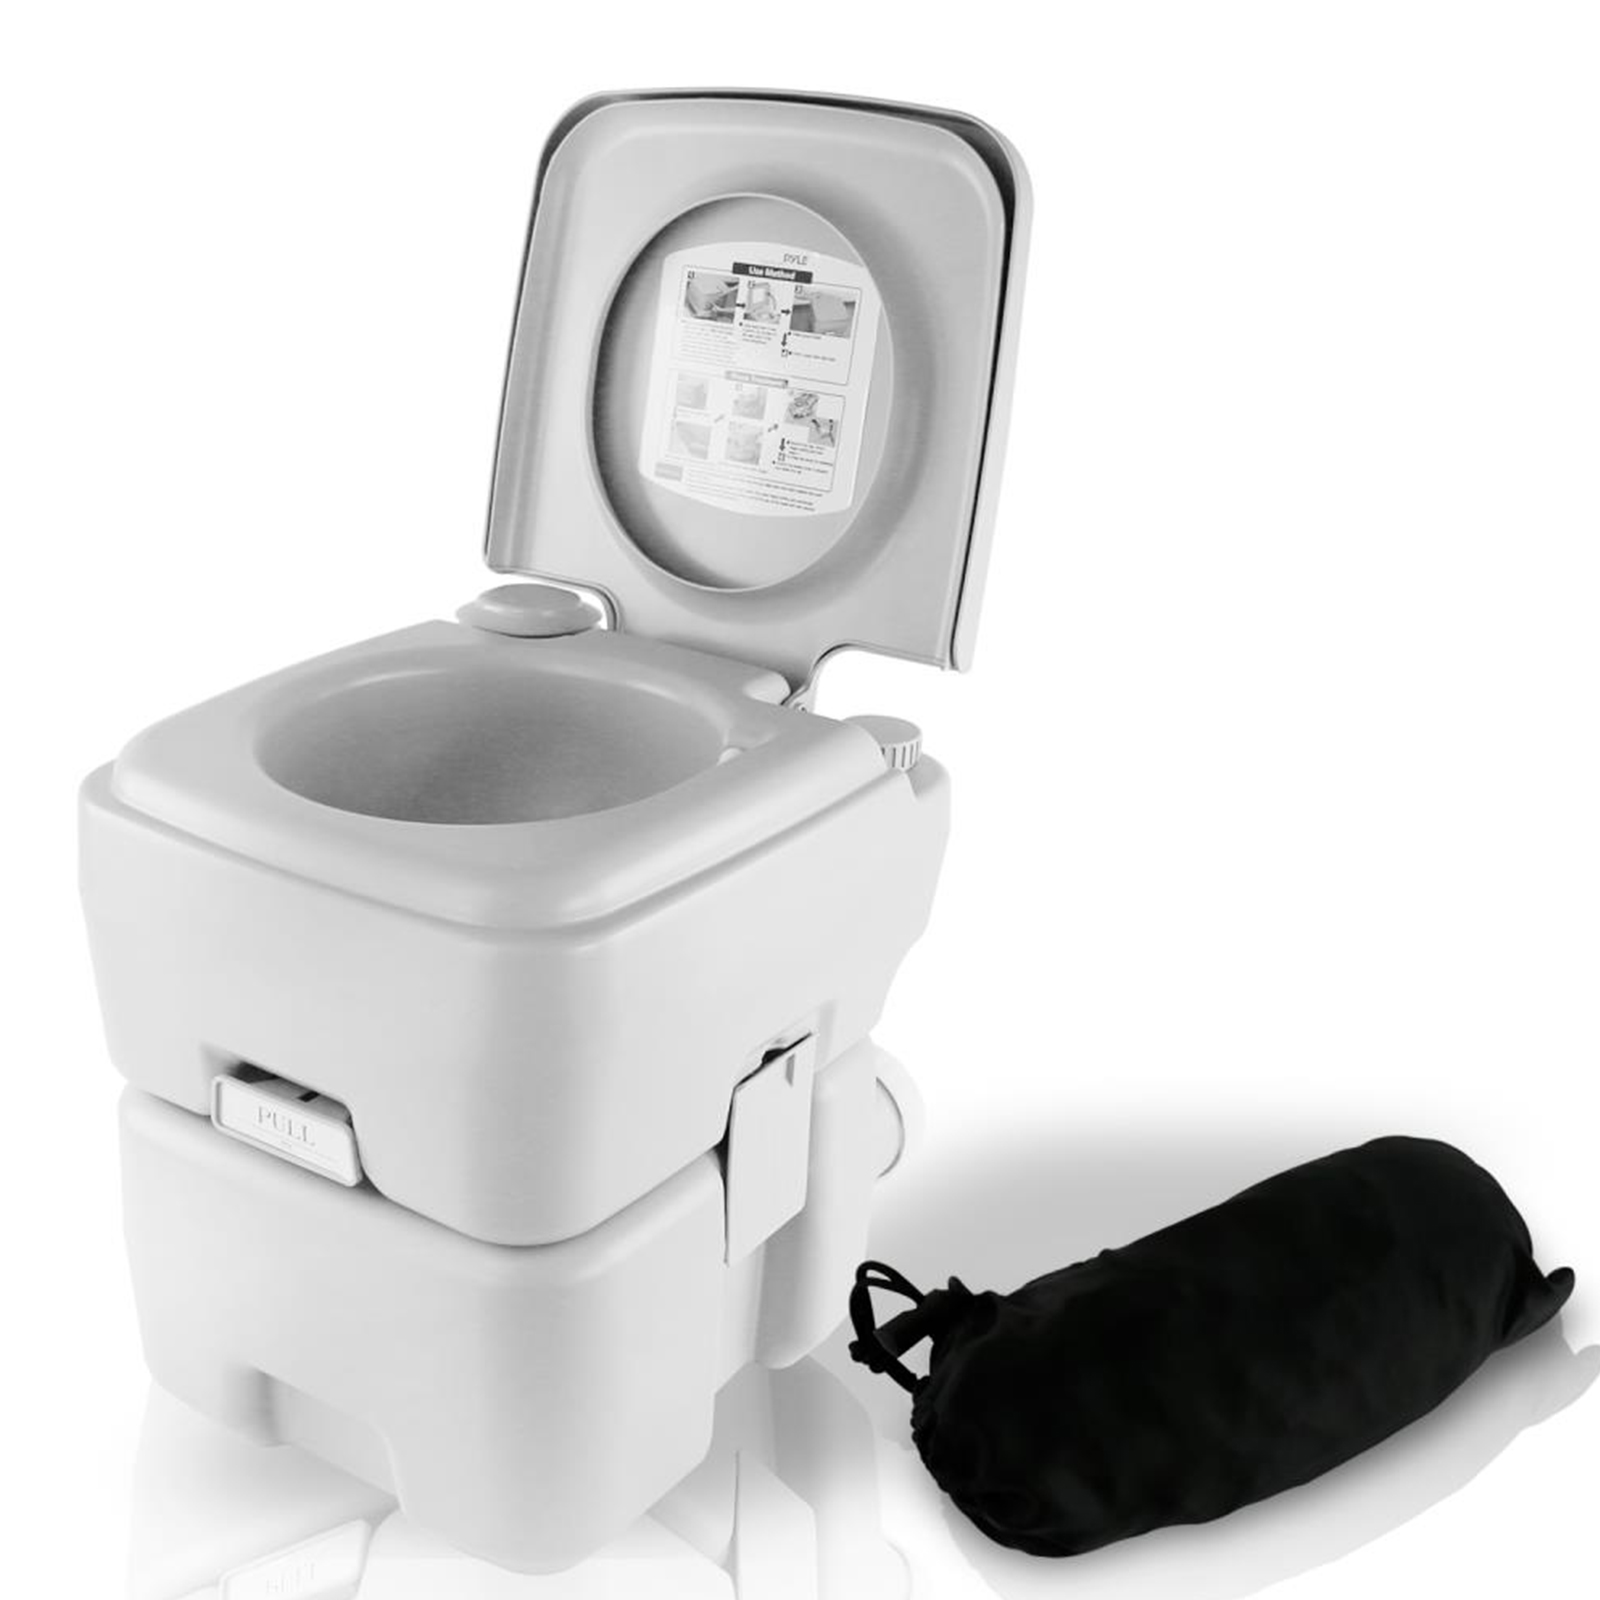 Serene Life Portable Toilet - Outdoor & Travel Toilet, 5.3 Gal.